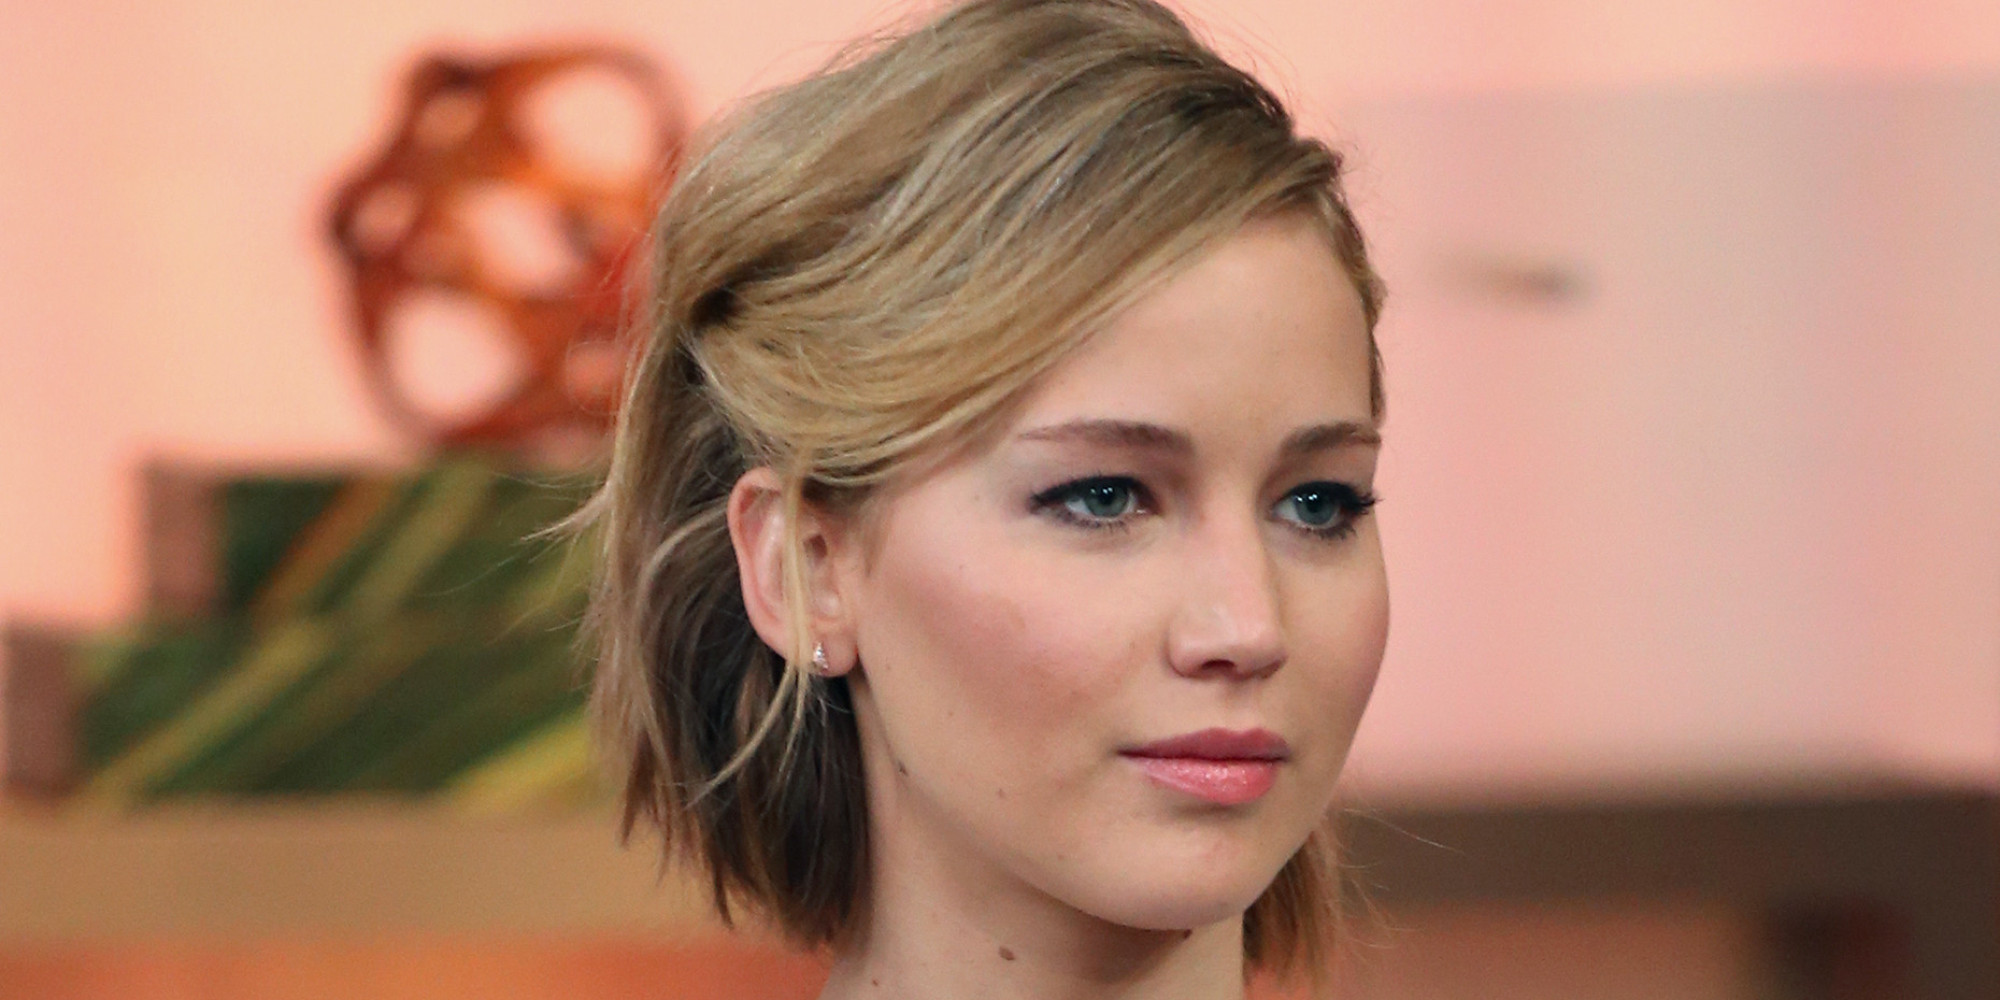 jennifer lawrence wallpaper widescreen - photo #26